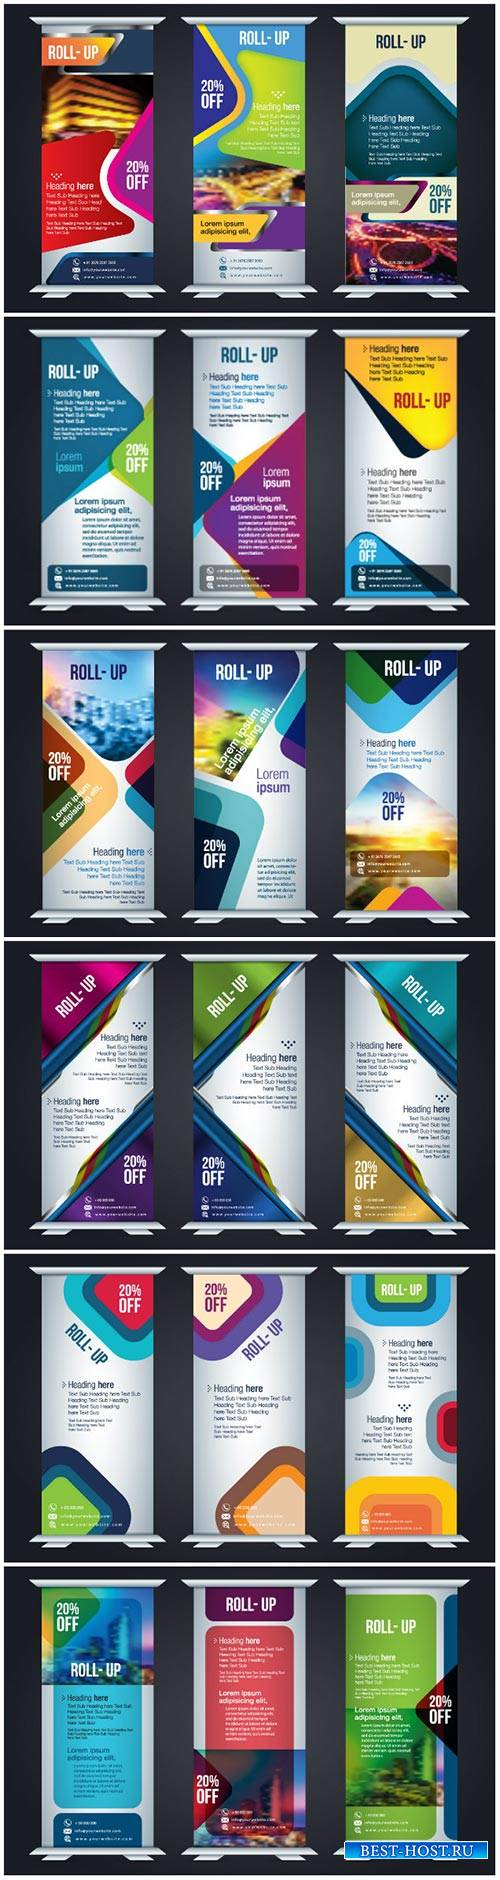 Vertical roll up design template for corporate business